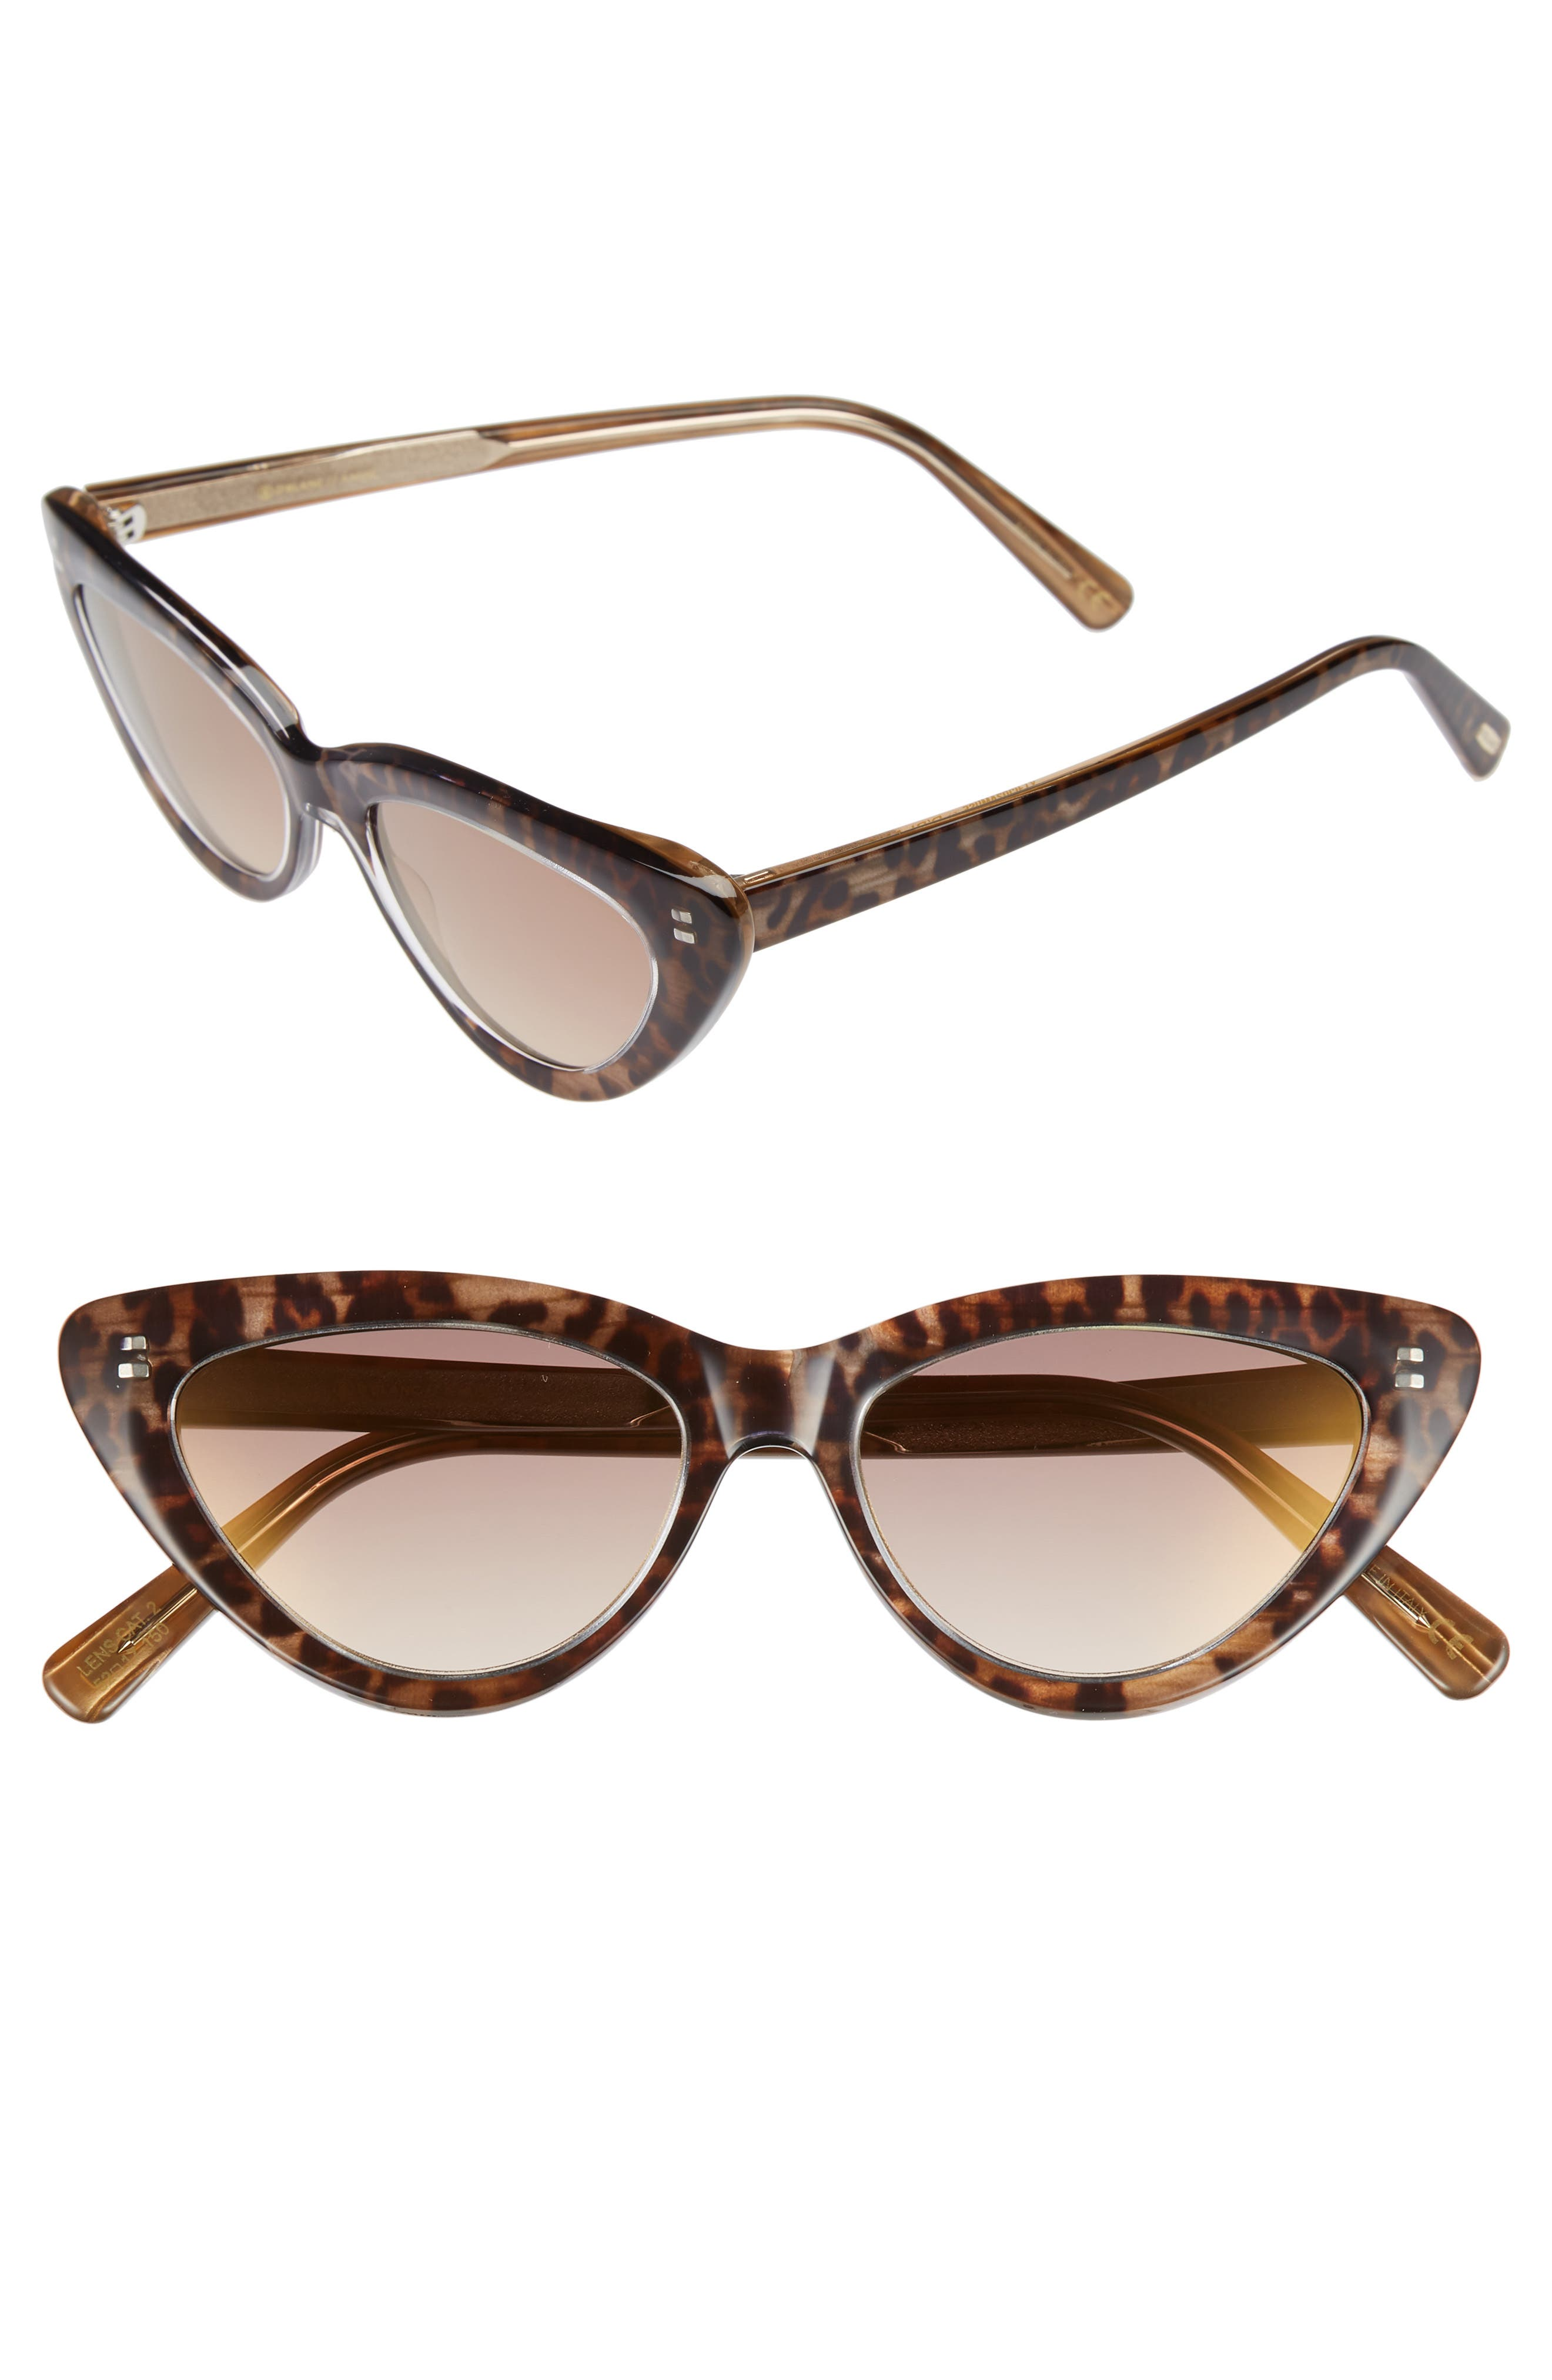 D'BLANC A-Muse 52mm Sunglasses,                         Main,                         color, CHEETAH